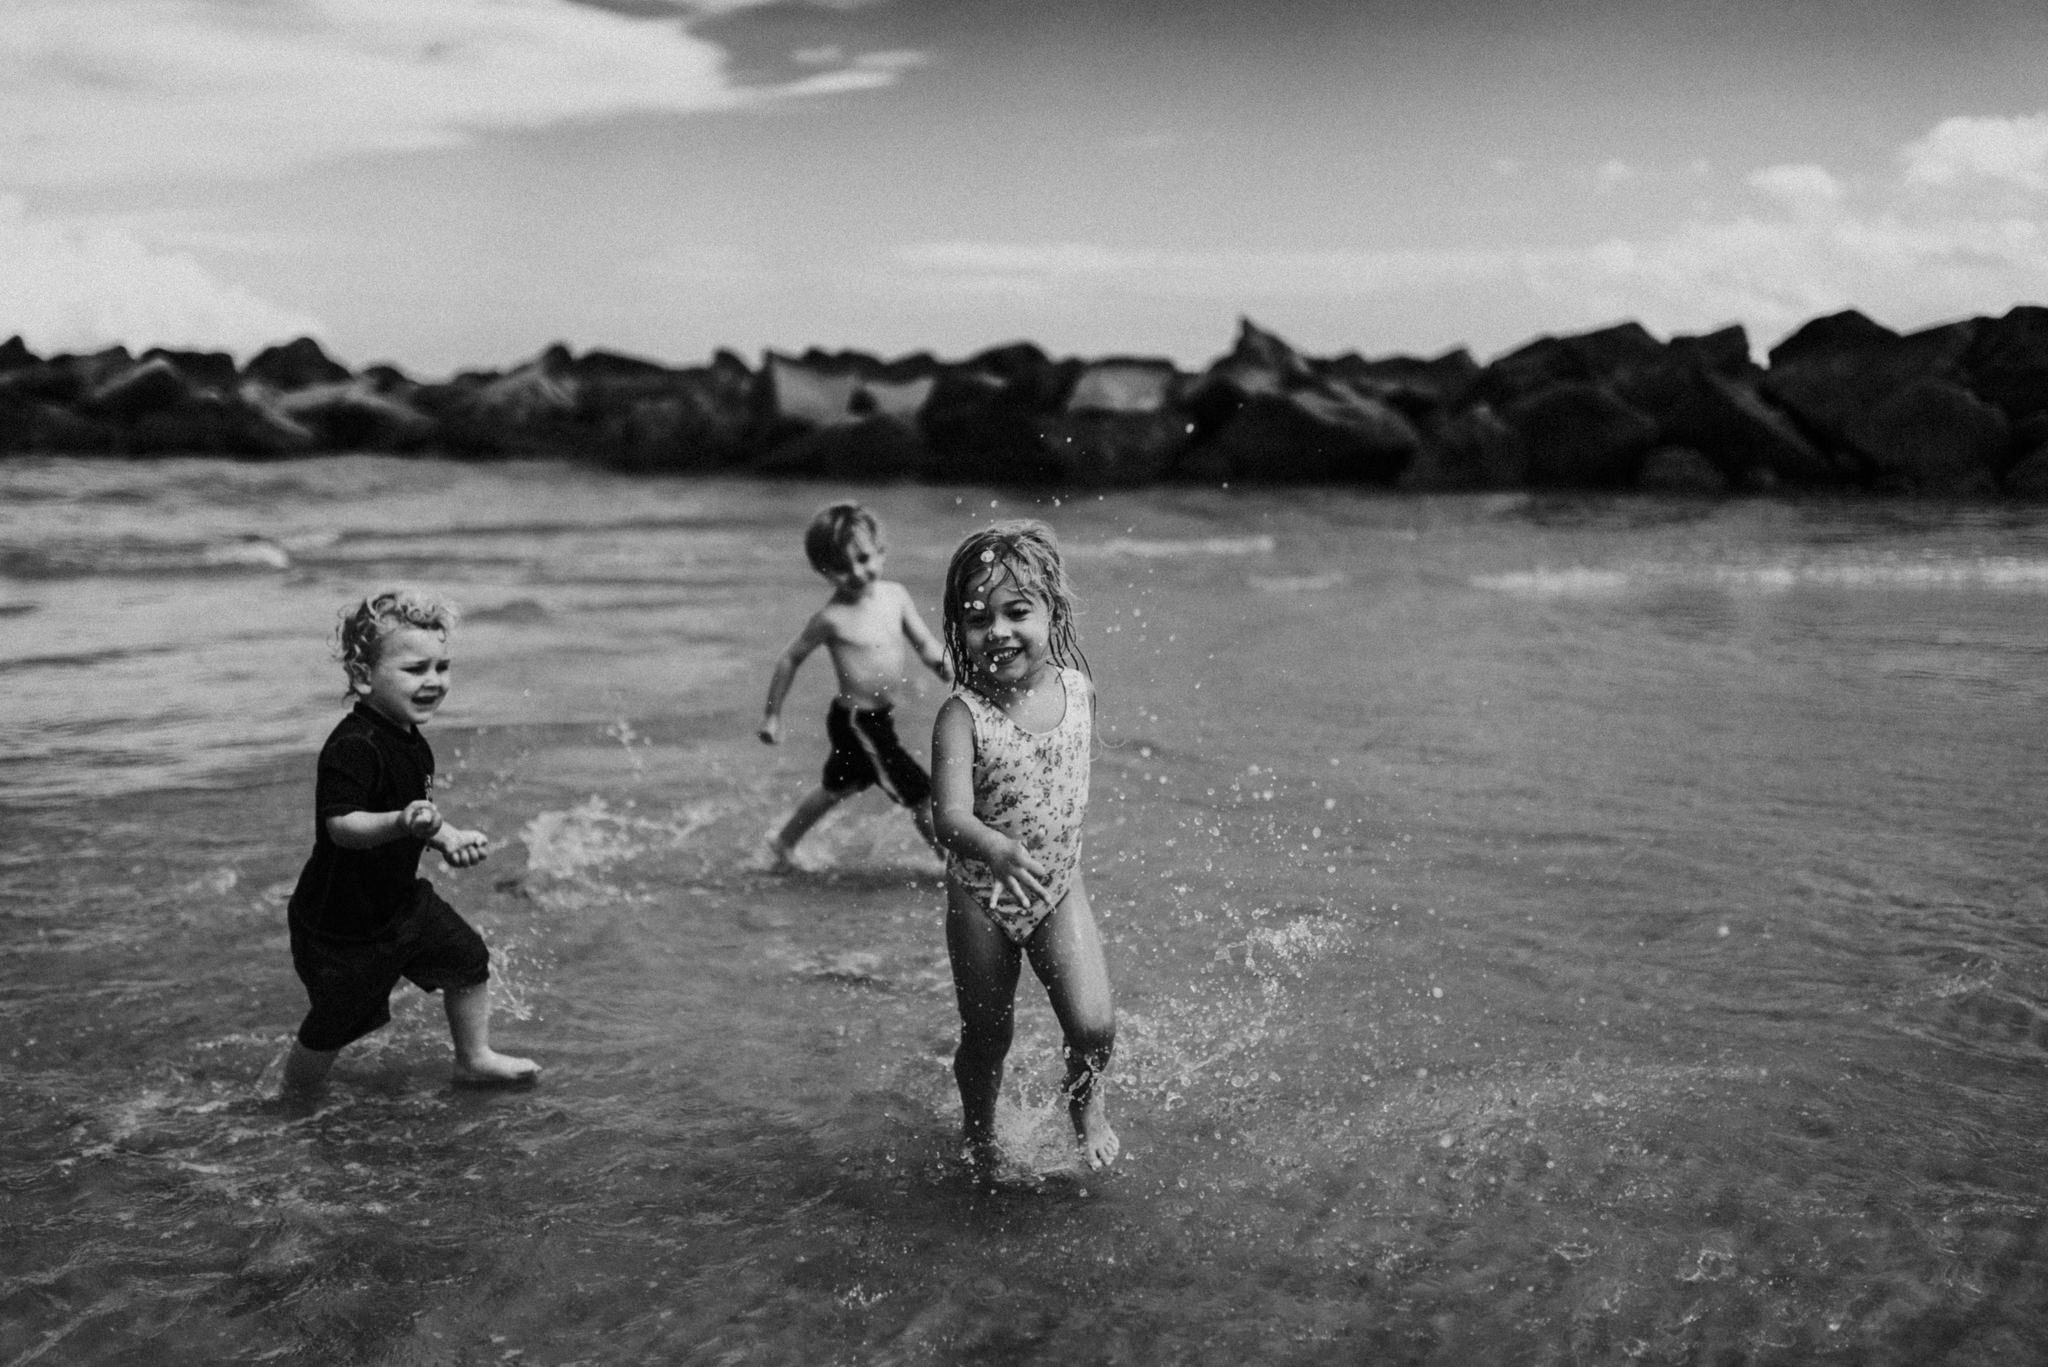 twyla jones photography - kids plalying at the beach in florida-9172.jpg